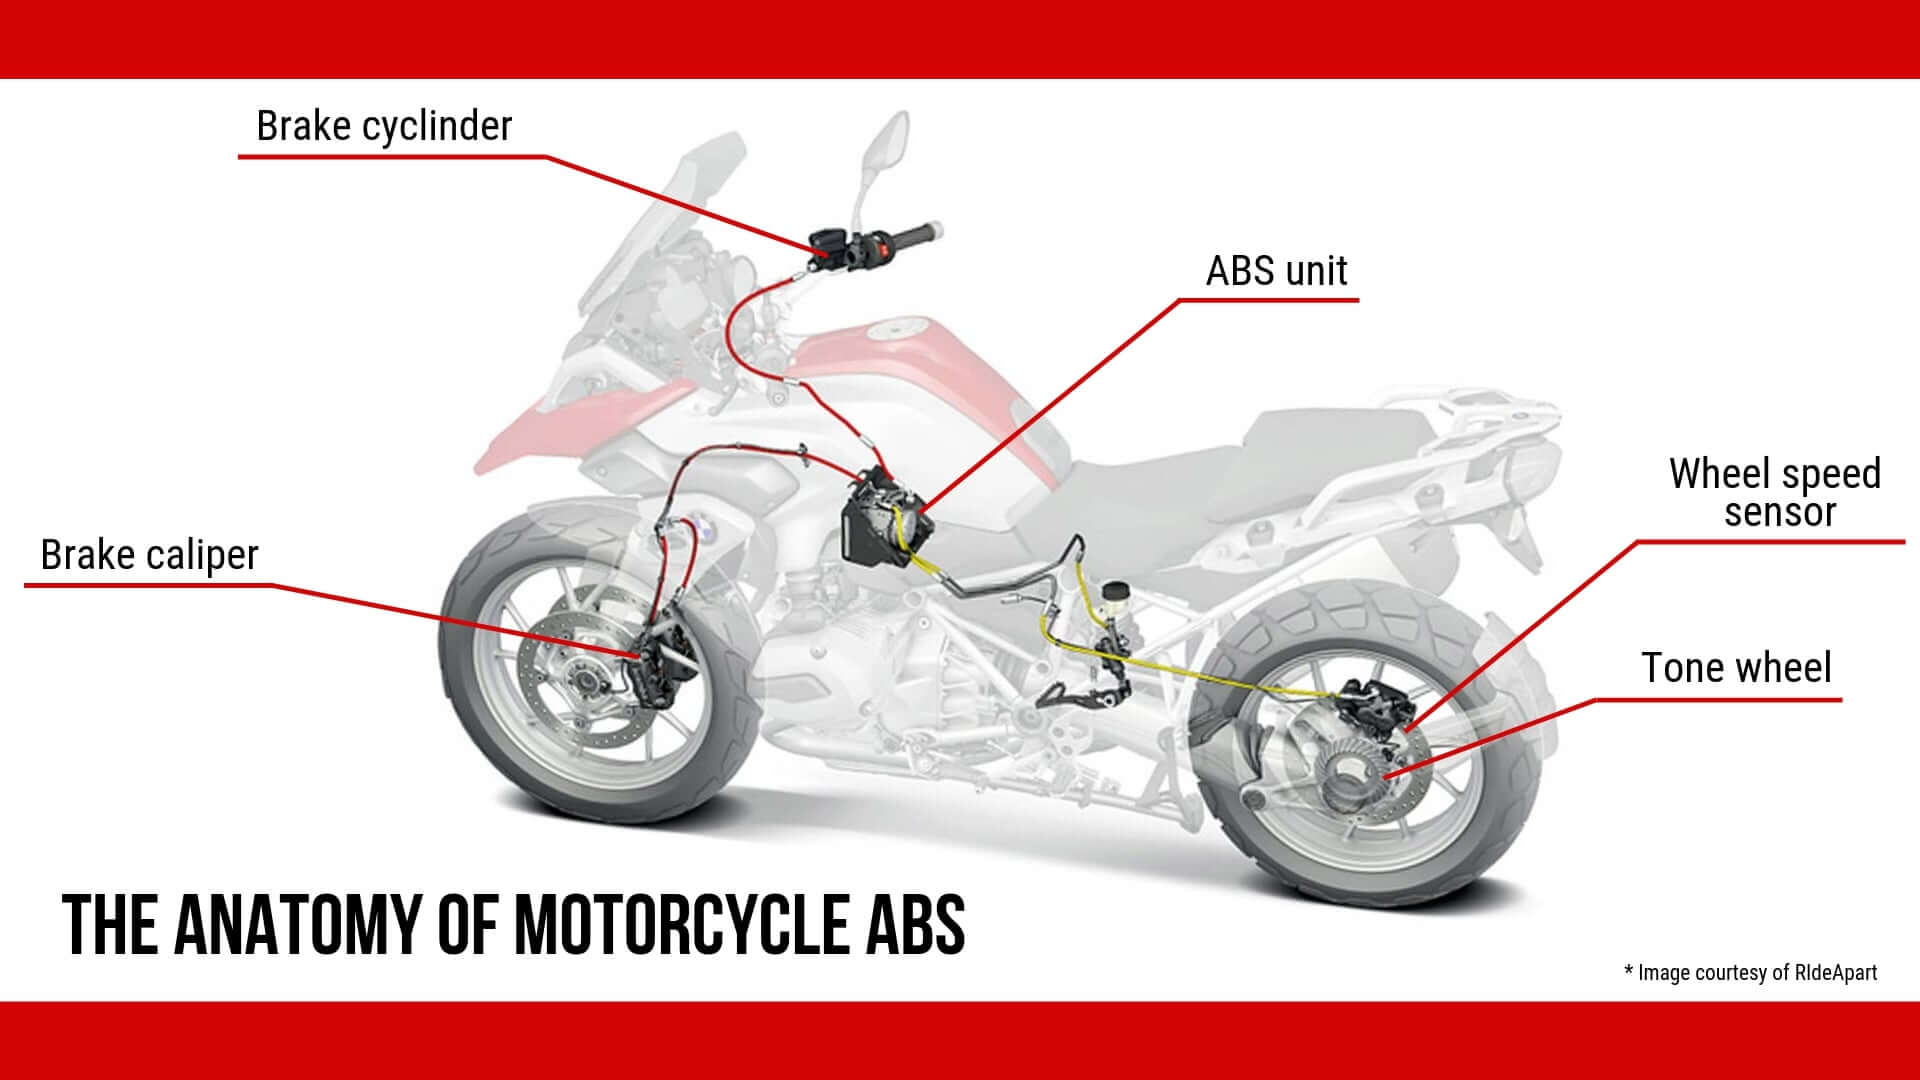 How ABS works?